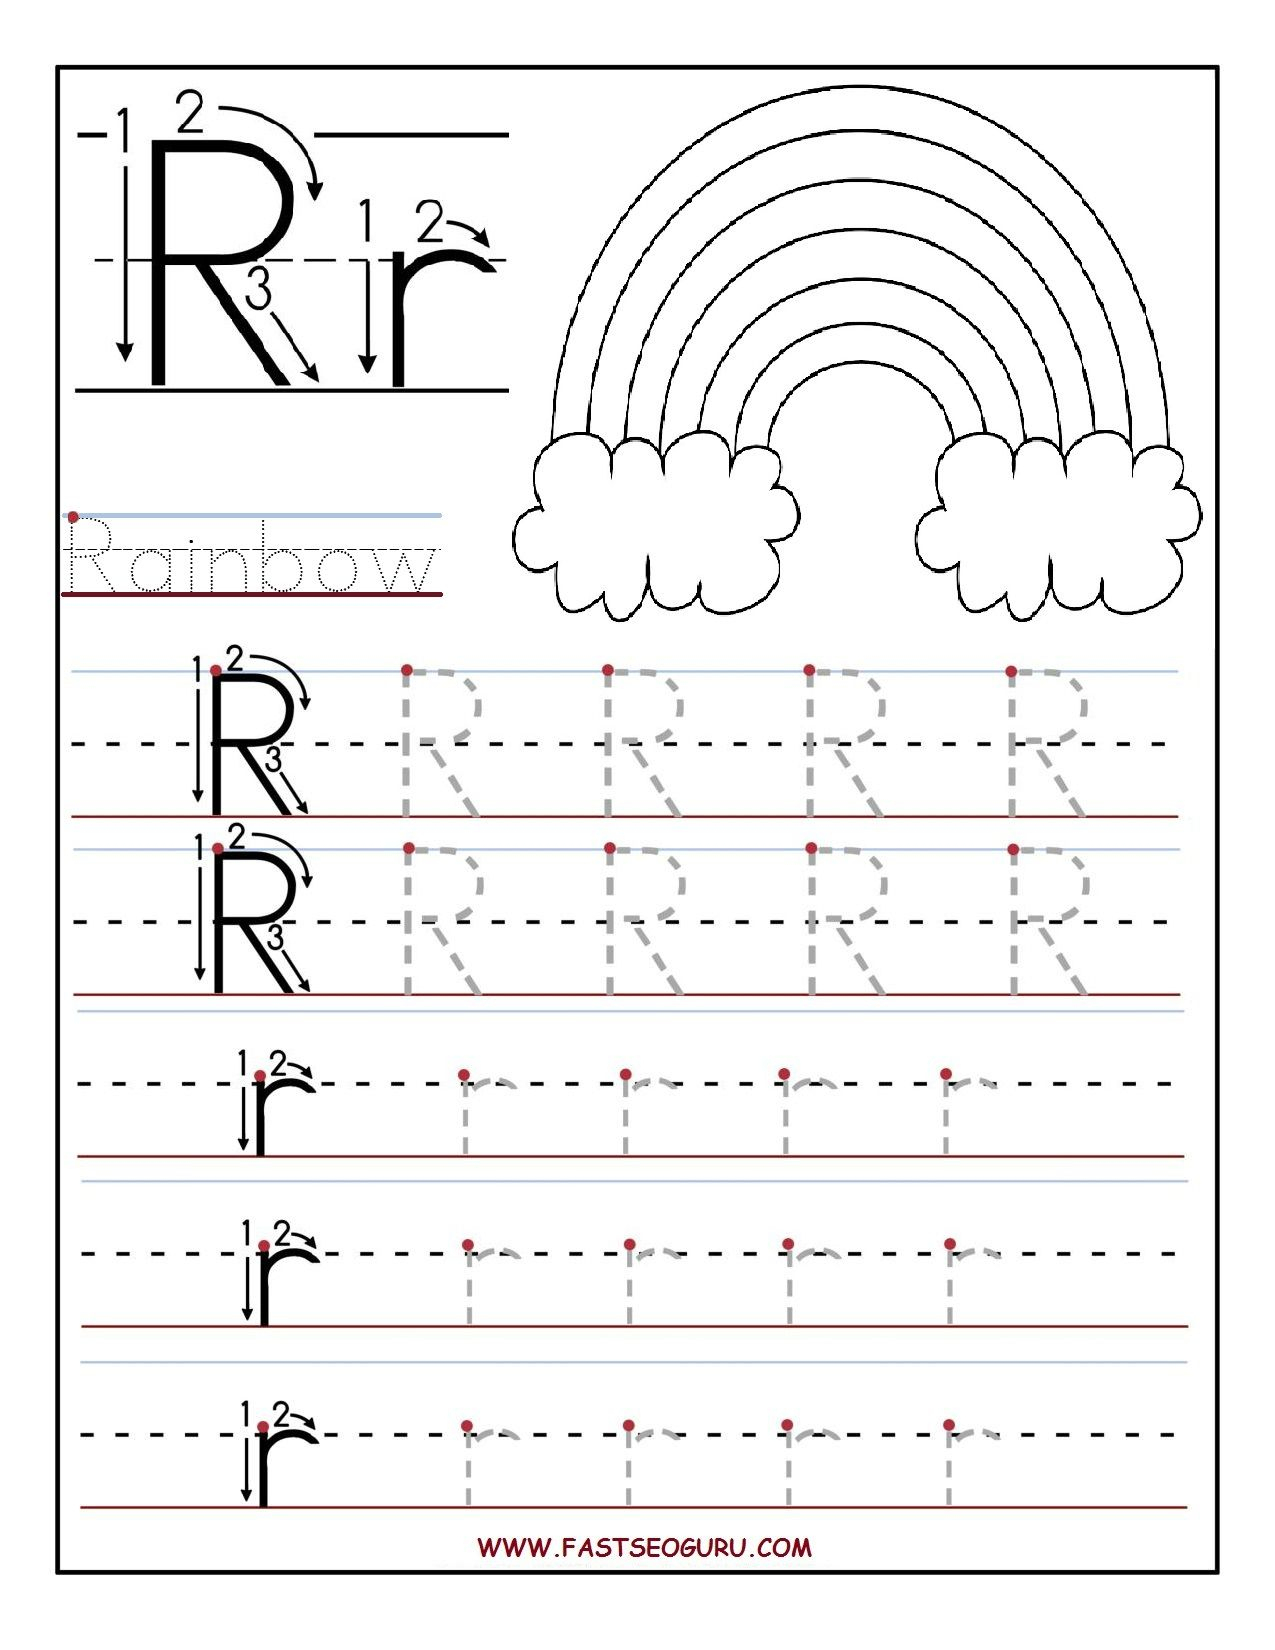 Printable Letter R Tracing Worksheets For Preschool | Teacher - Free Printable Preschool Worksheets For The Letter R